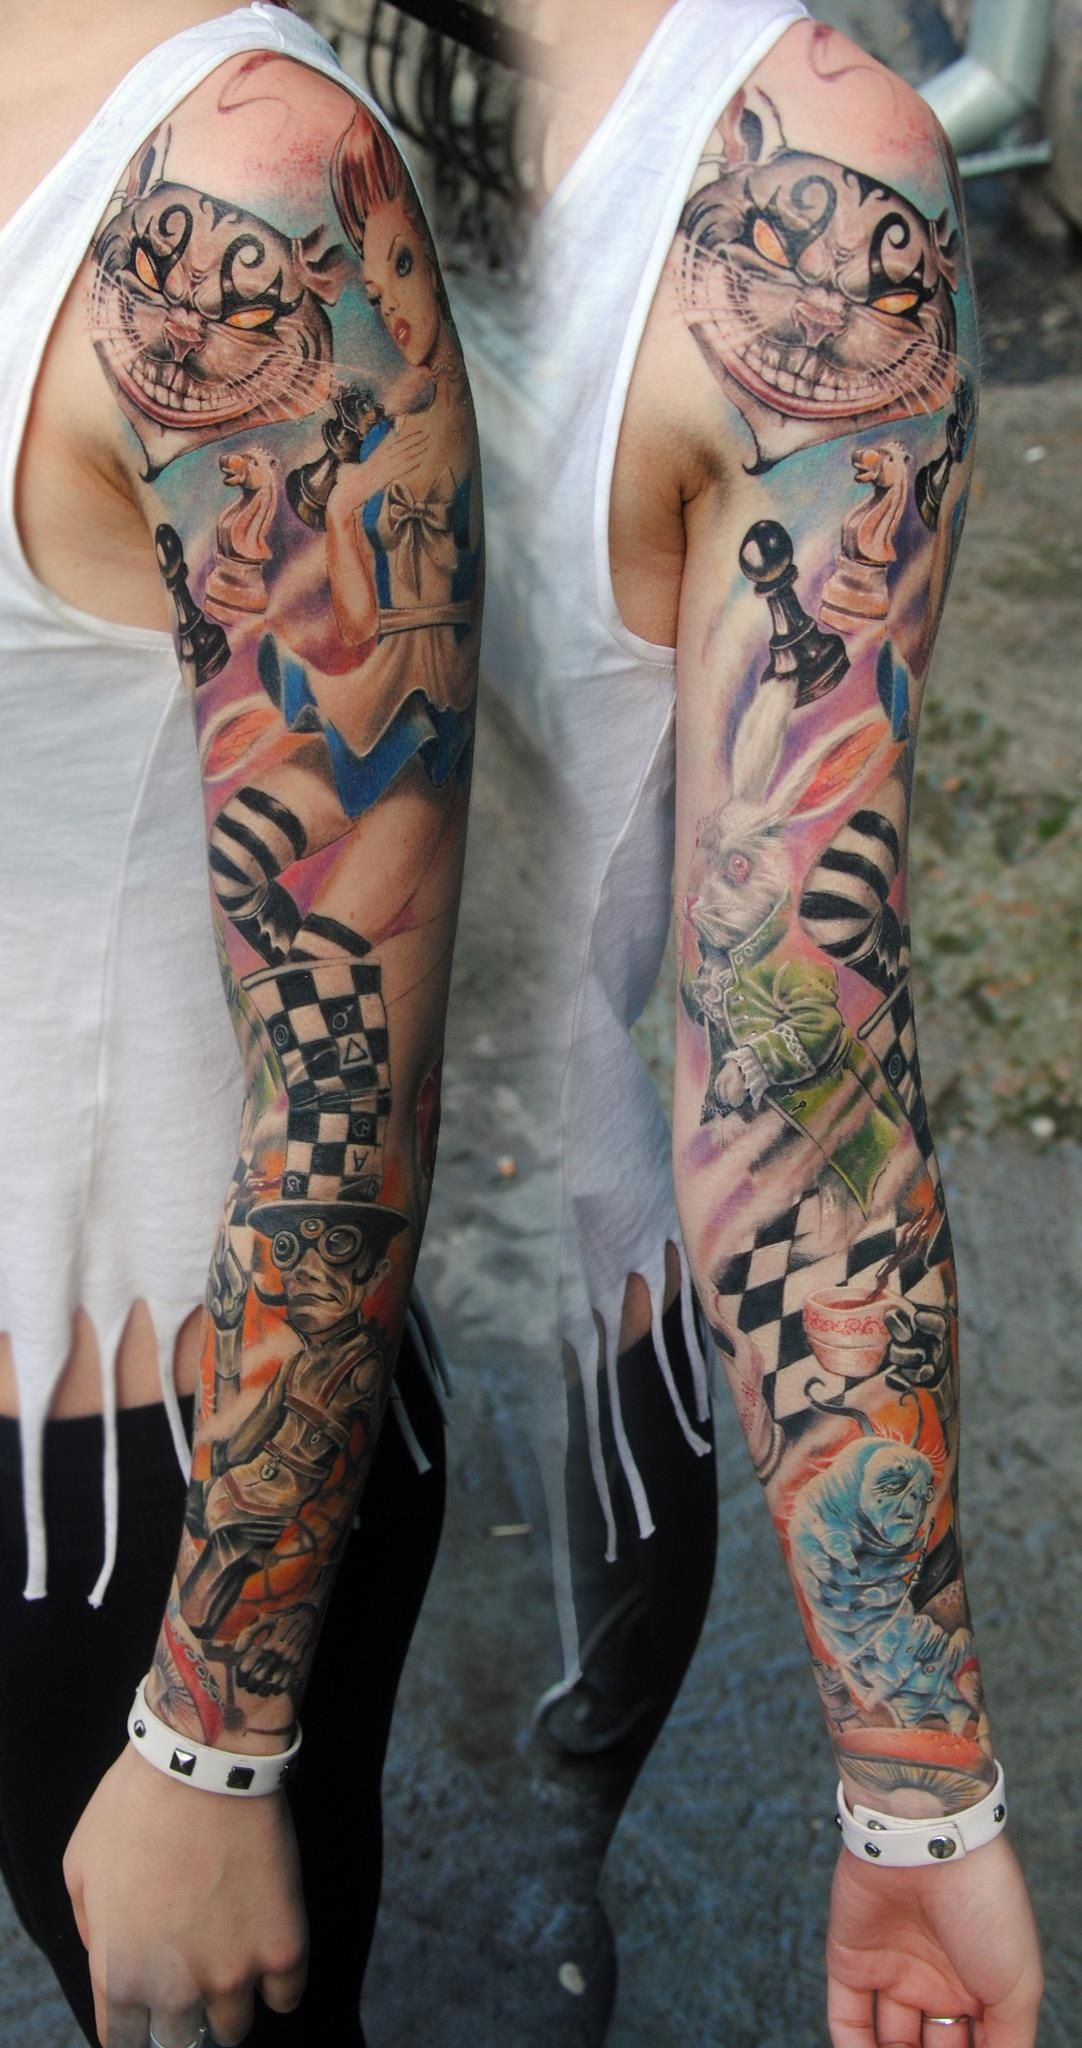 Love The Detail In This One Tattoo Ideas Alice In Wonderland